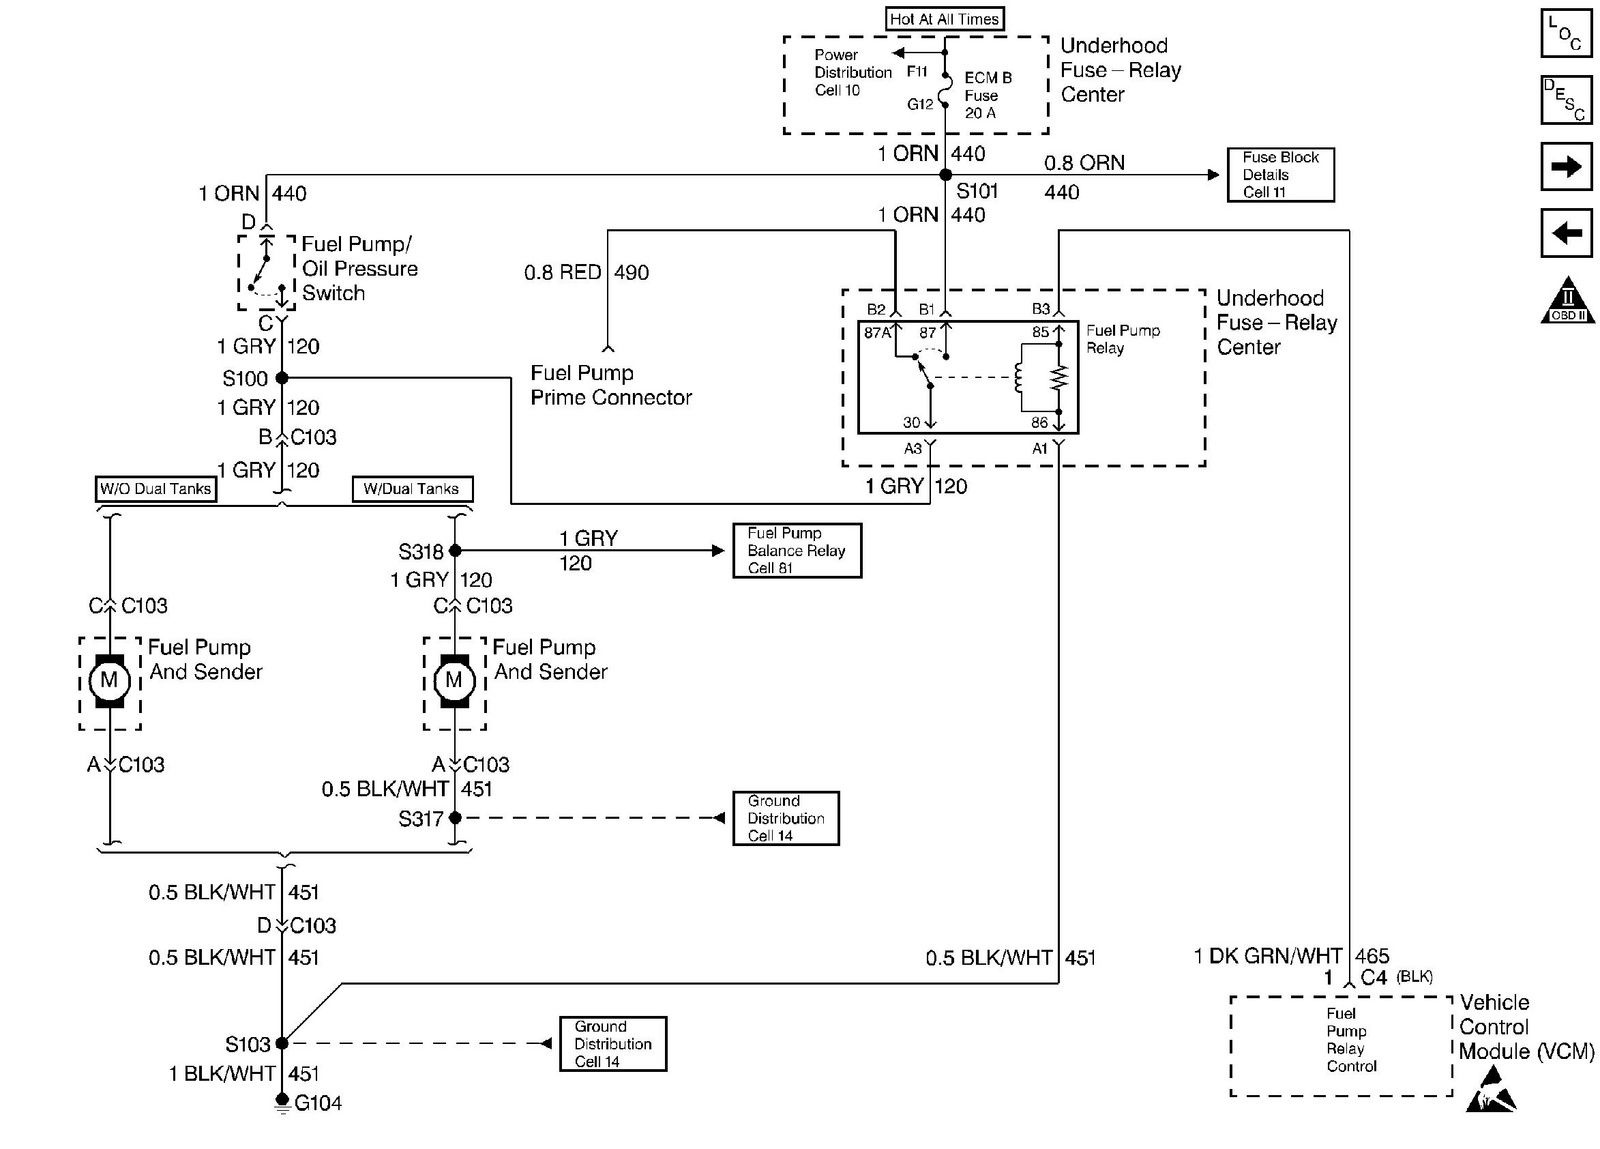 Fuel Pump Wiring Diagram 1994 Gmc 33 Images Suburban 1500 Pic 518929527984038000 1600x1200 Questions 96 When I Turn The Key Okay This Schematic